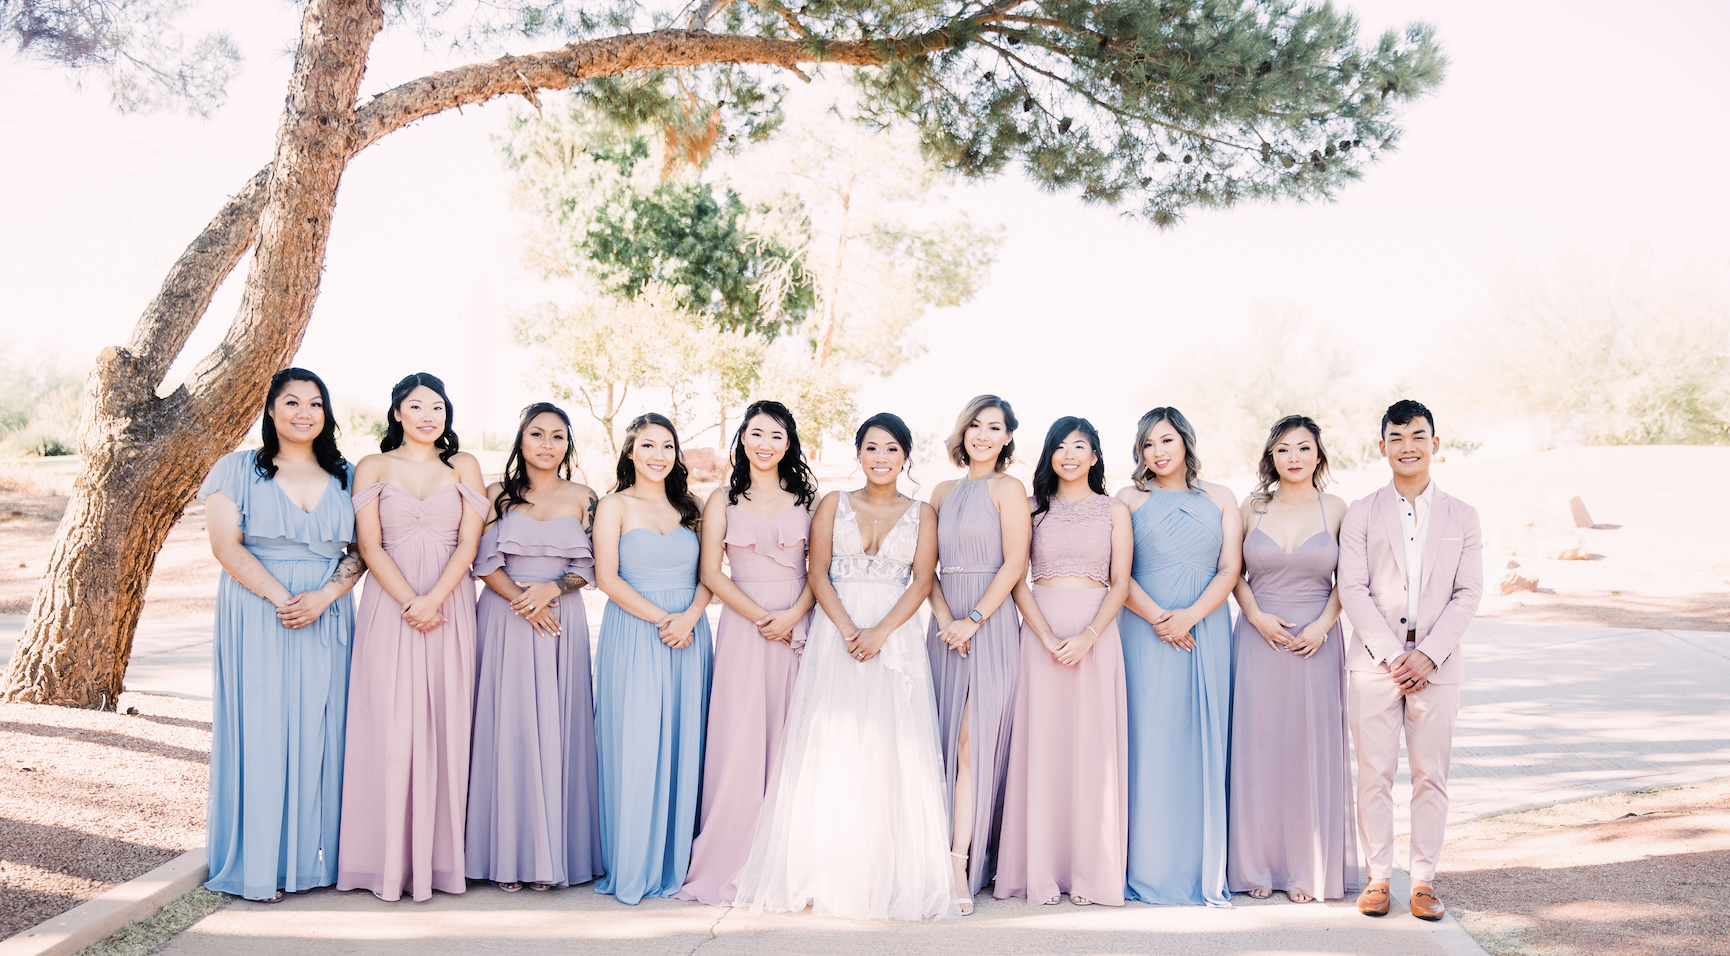 "Azazie Bridesmaid Dresses: THOSE COLORS THOUGH. I have to admit, I had started calling them out by dress color at some point during the day and it stuck, haha. ""HEY BLUES GET OVER HERE"""